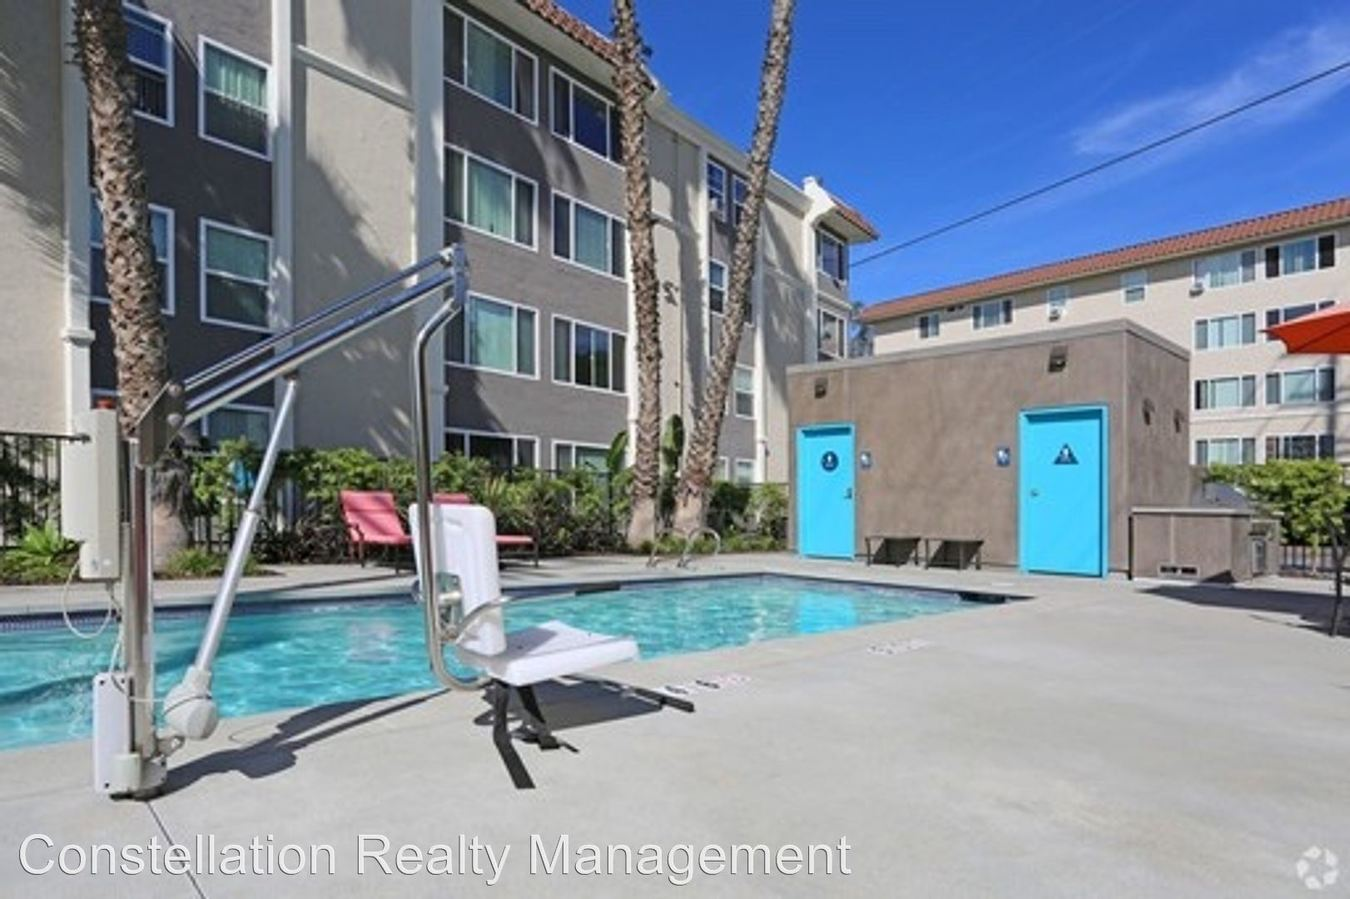 2 Bedrooms 2 Bathrooms Apartment for rent at 3710-3810 Wabash Ave in San Diego, CA